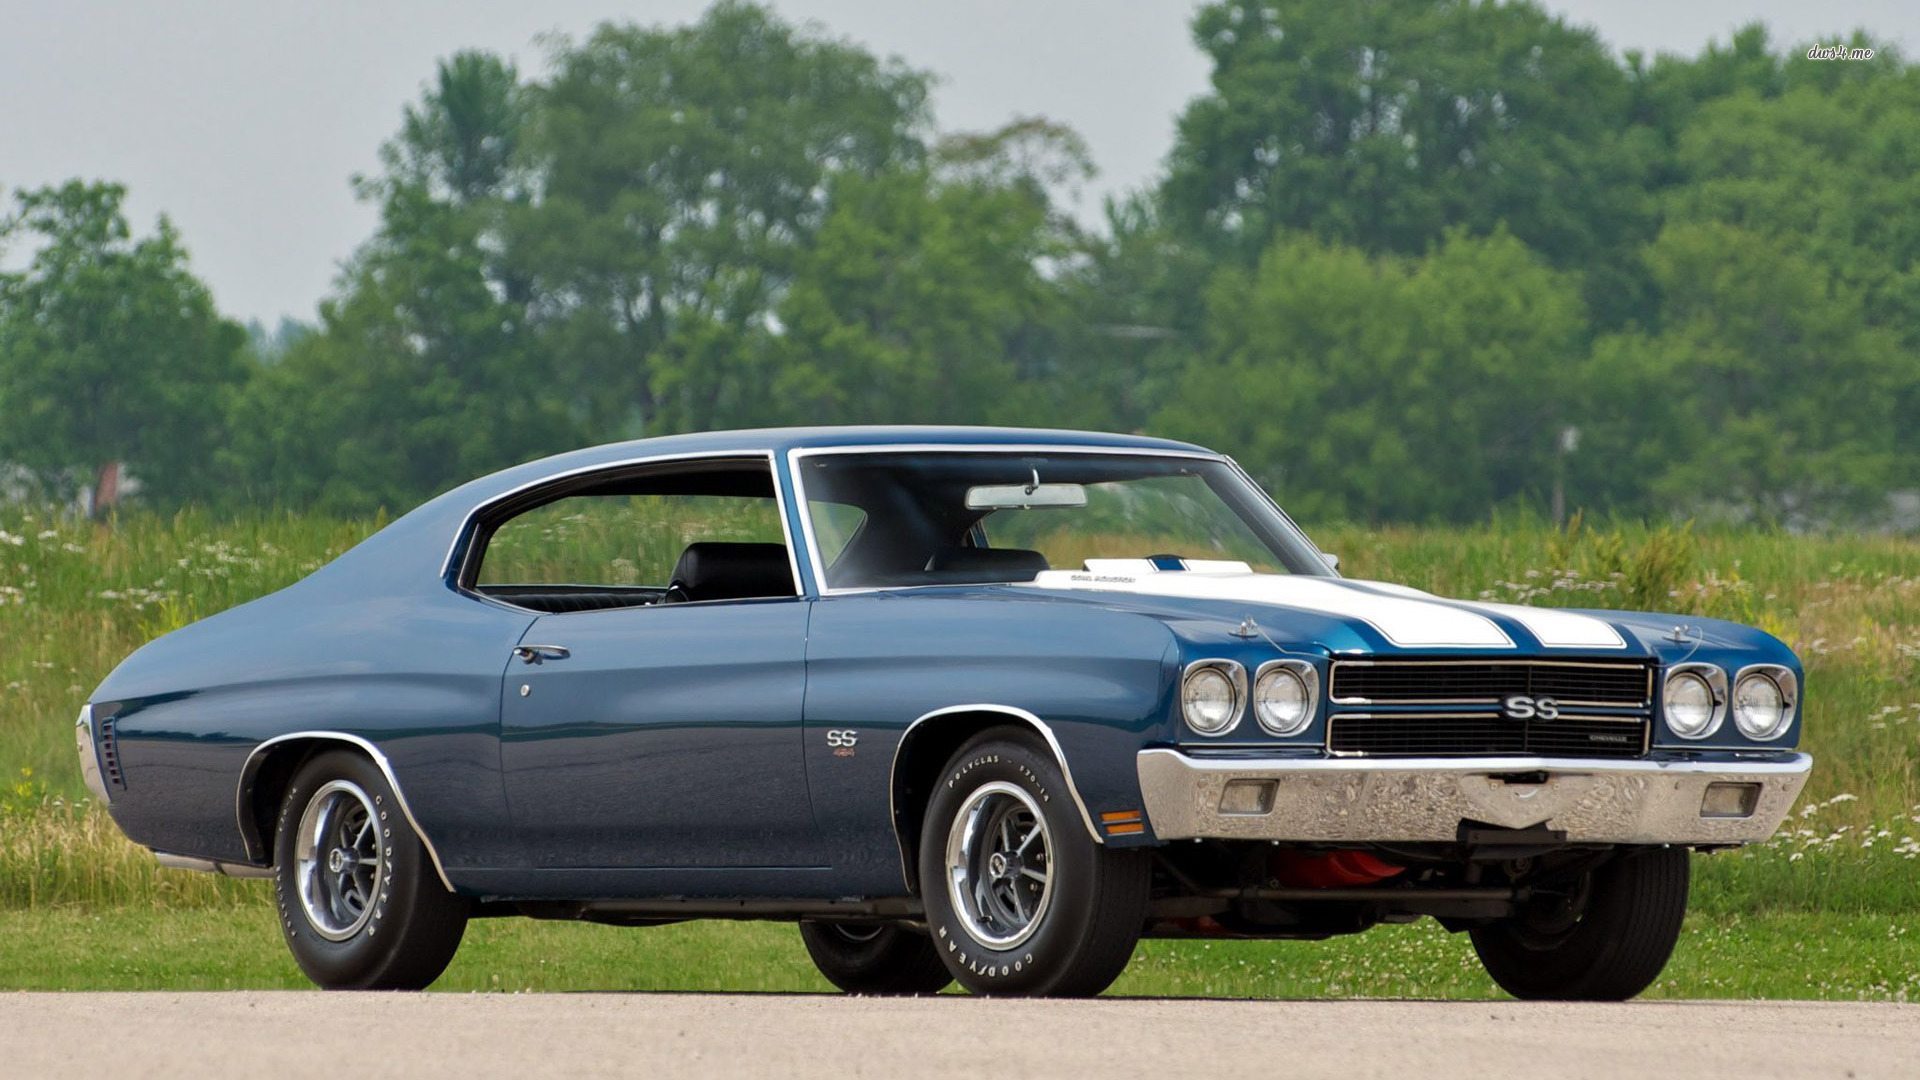 1970 chevy chevelle ss chevrolet hd wallpaper cars muscle cars vintage 1920x1080